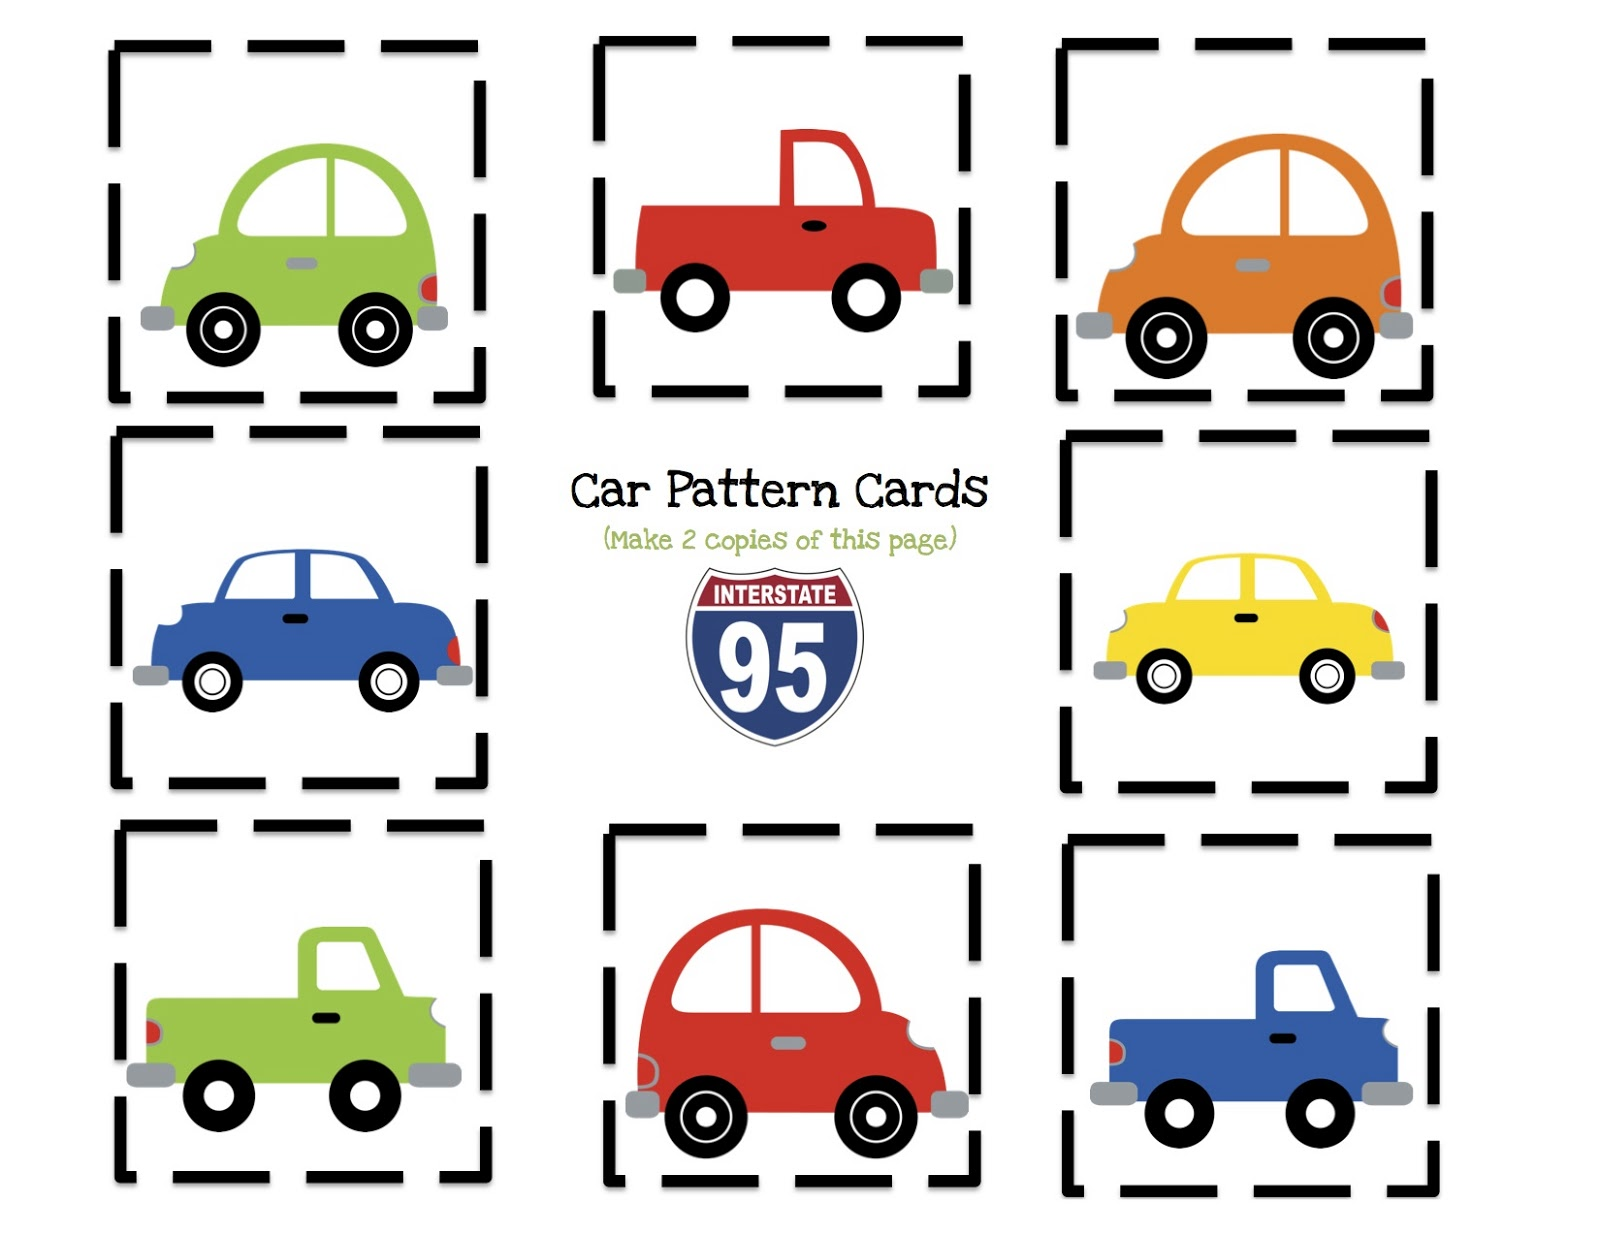 Cars Pattern Cards 1 600 1 236 Pixels